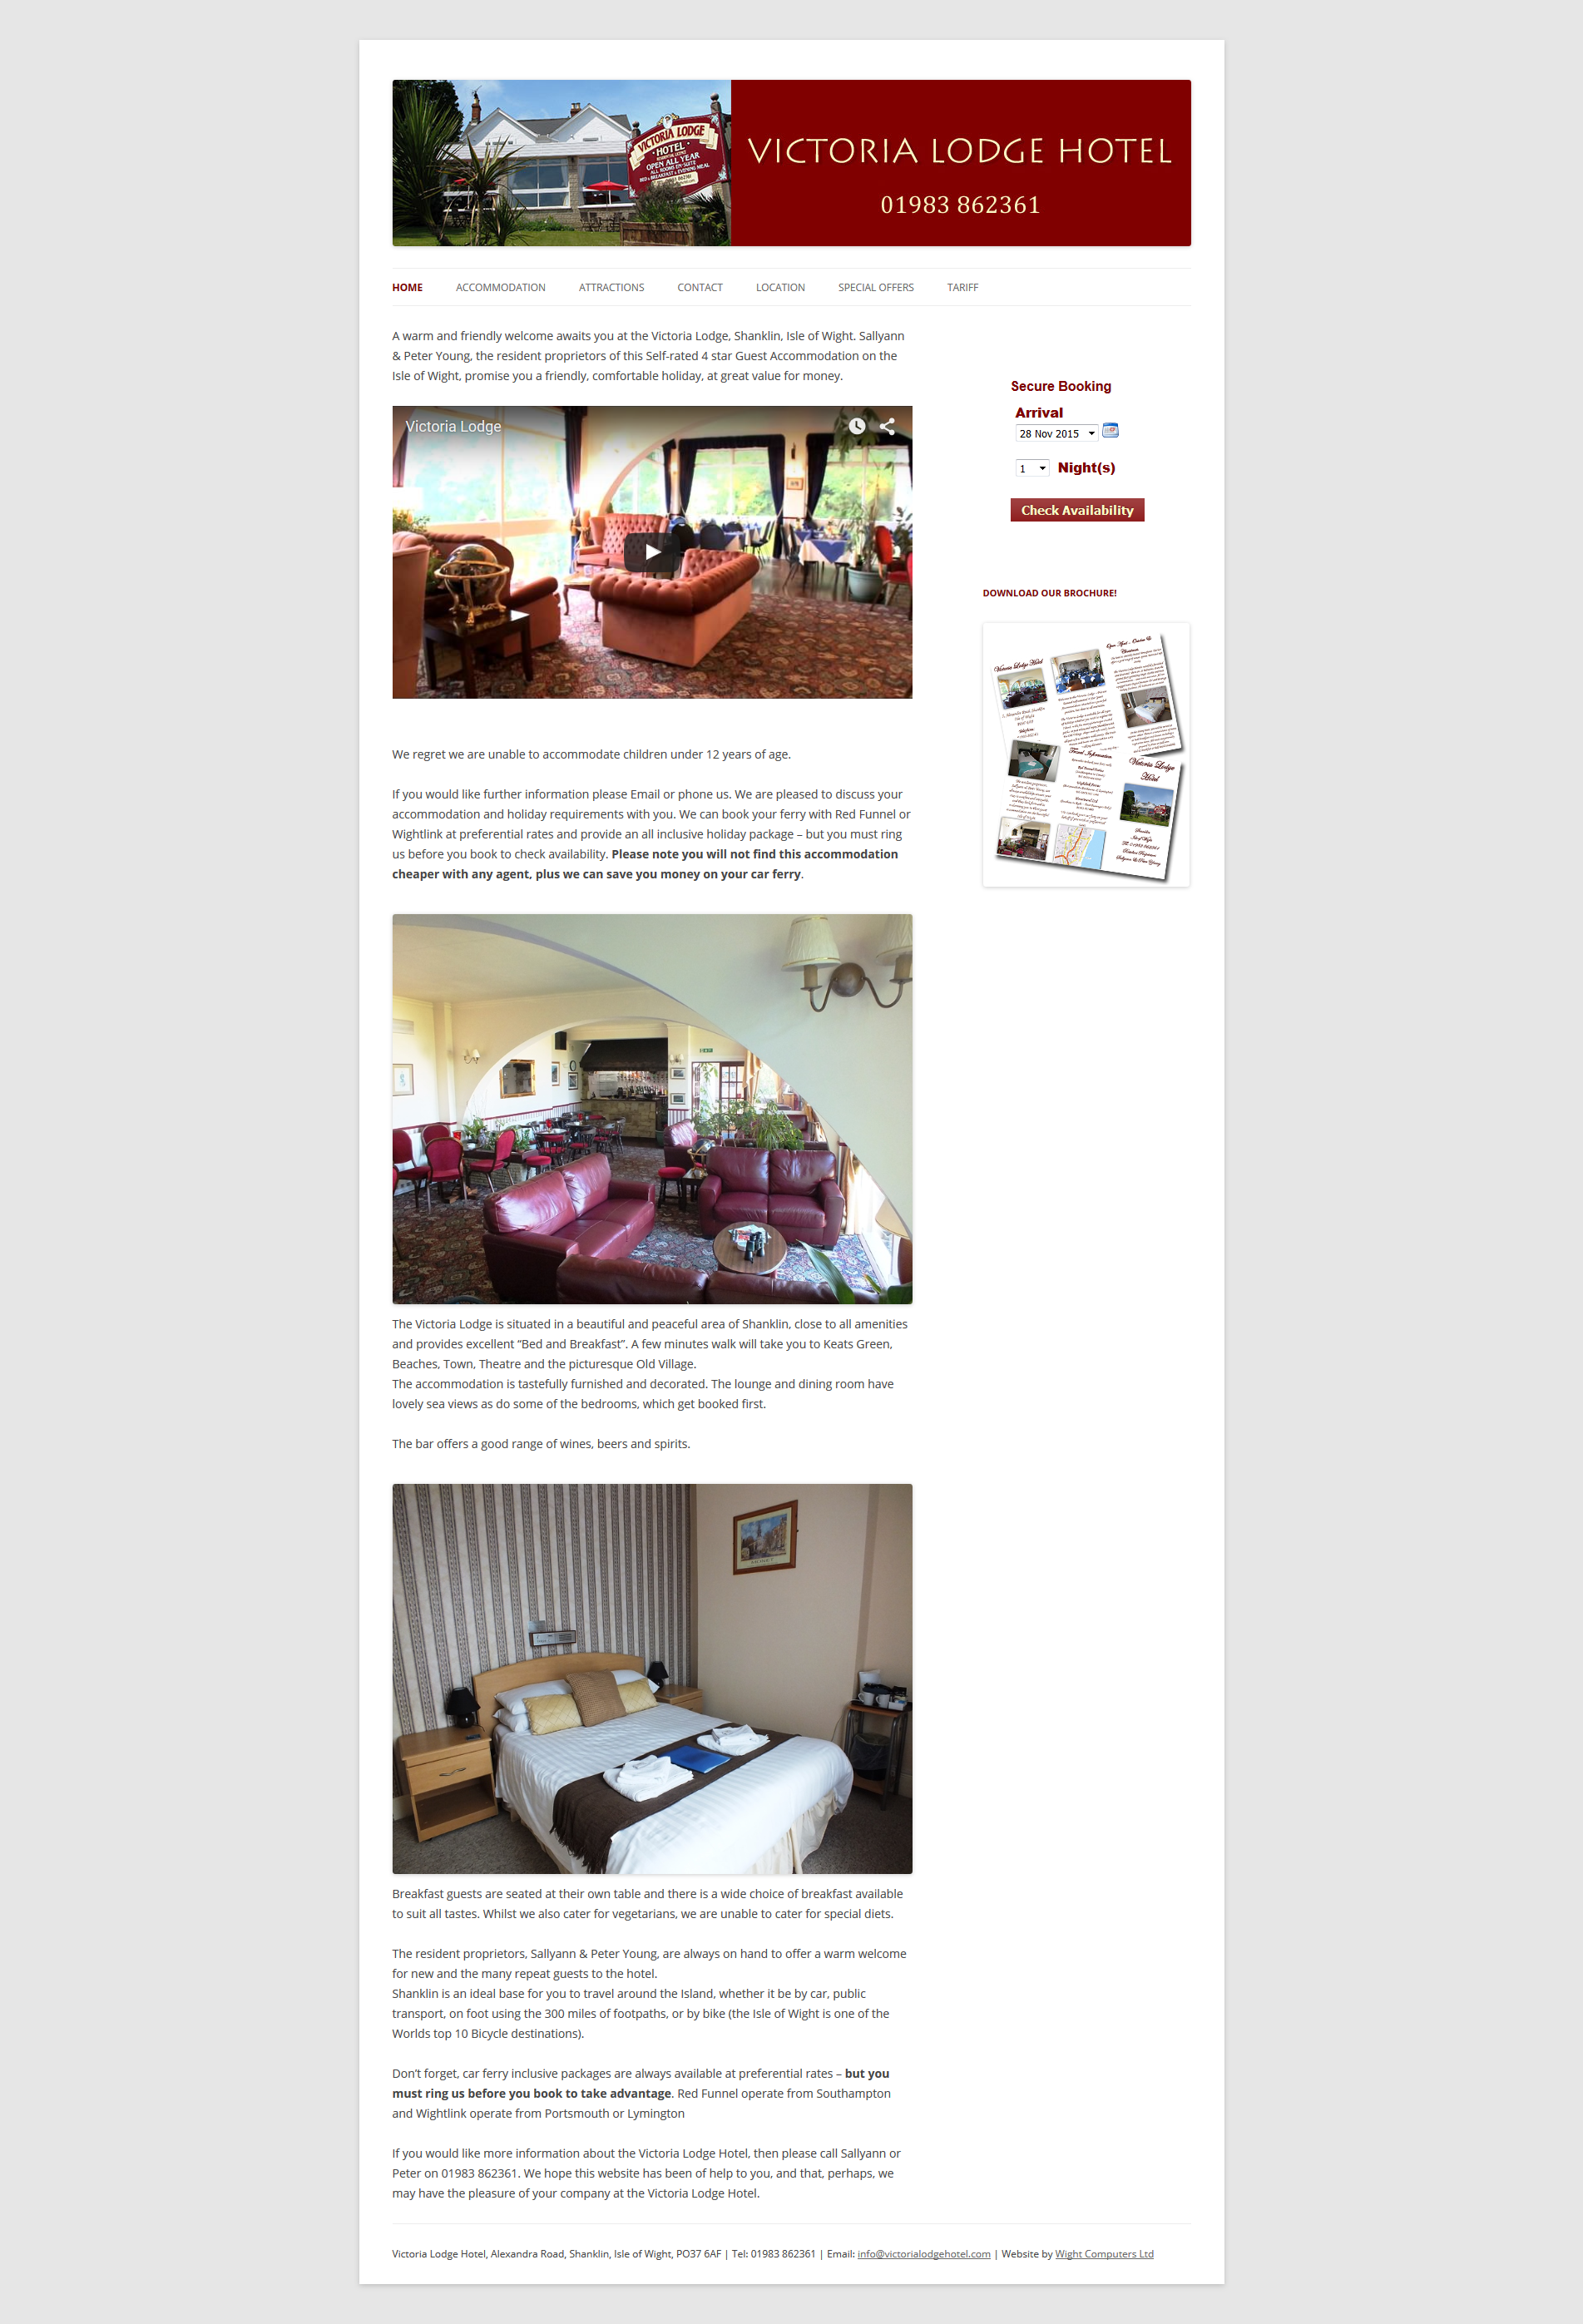 Victoria Lodge Hotel – Shanklin Isle of Wight Accommodation 2015-11-27 11-35-40